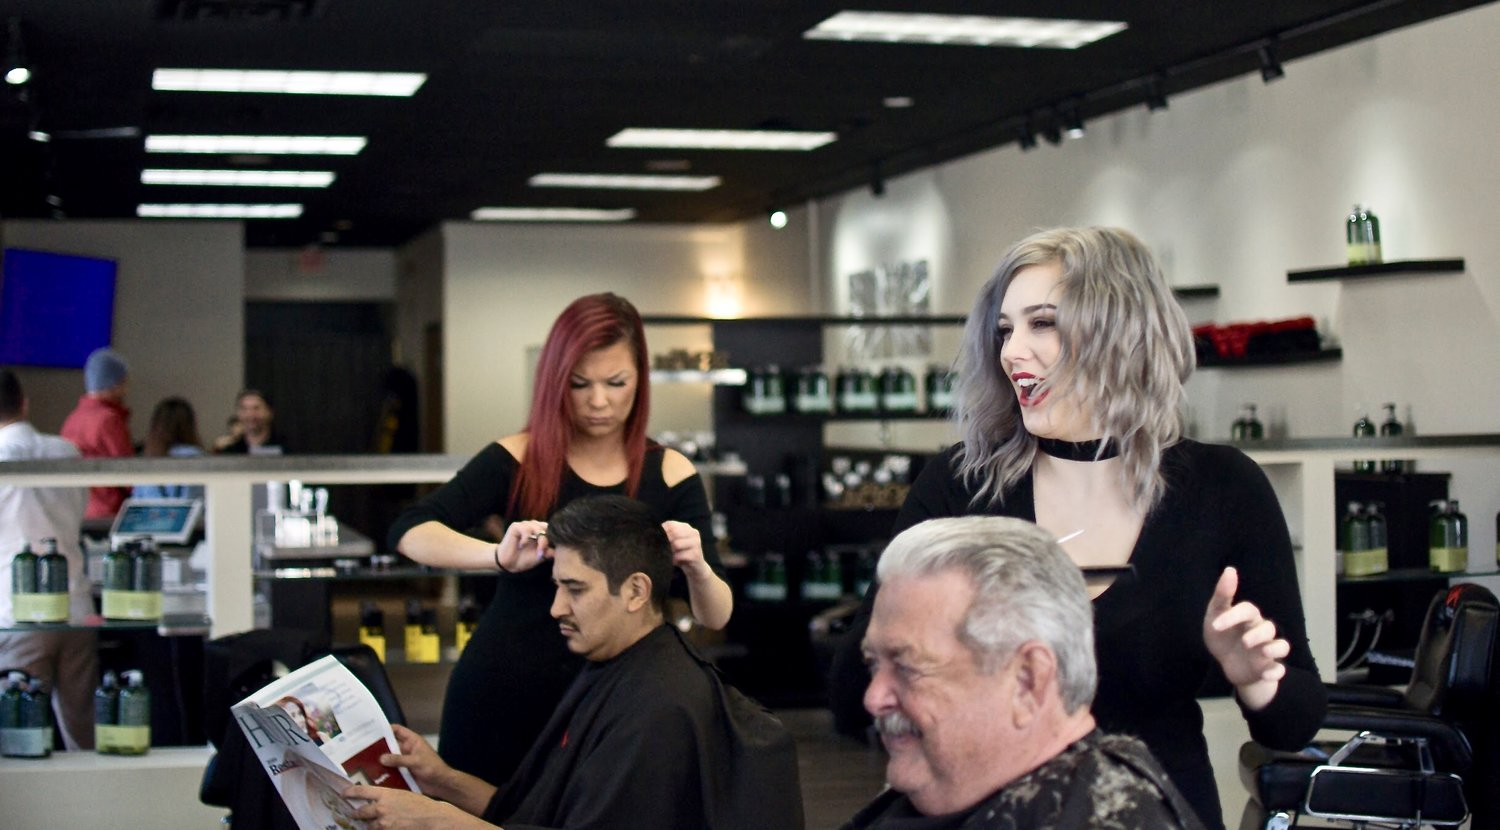 Mens Hair Salon Barber Inspired W Barber Spa Salon Come See What Everyone Is Talking About By Classic Barber Style Grooming Mens Hair Salon Barber Inspired Welcome To Modern